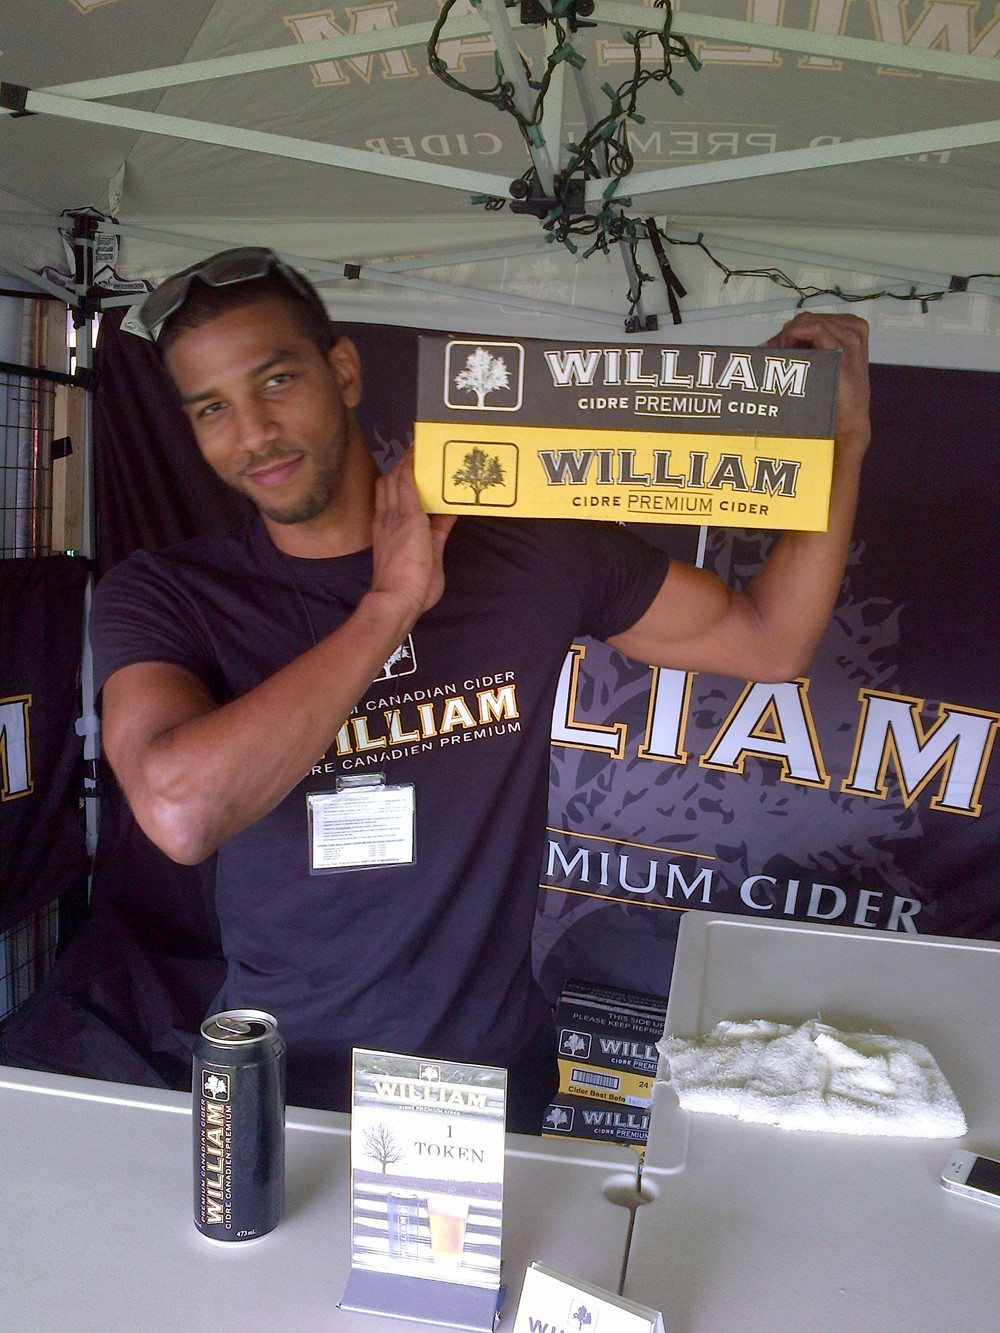 William Cider Ambassador